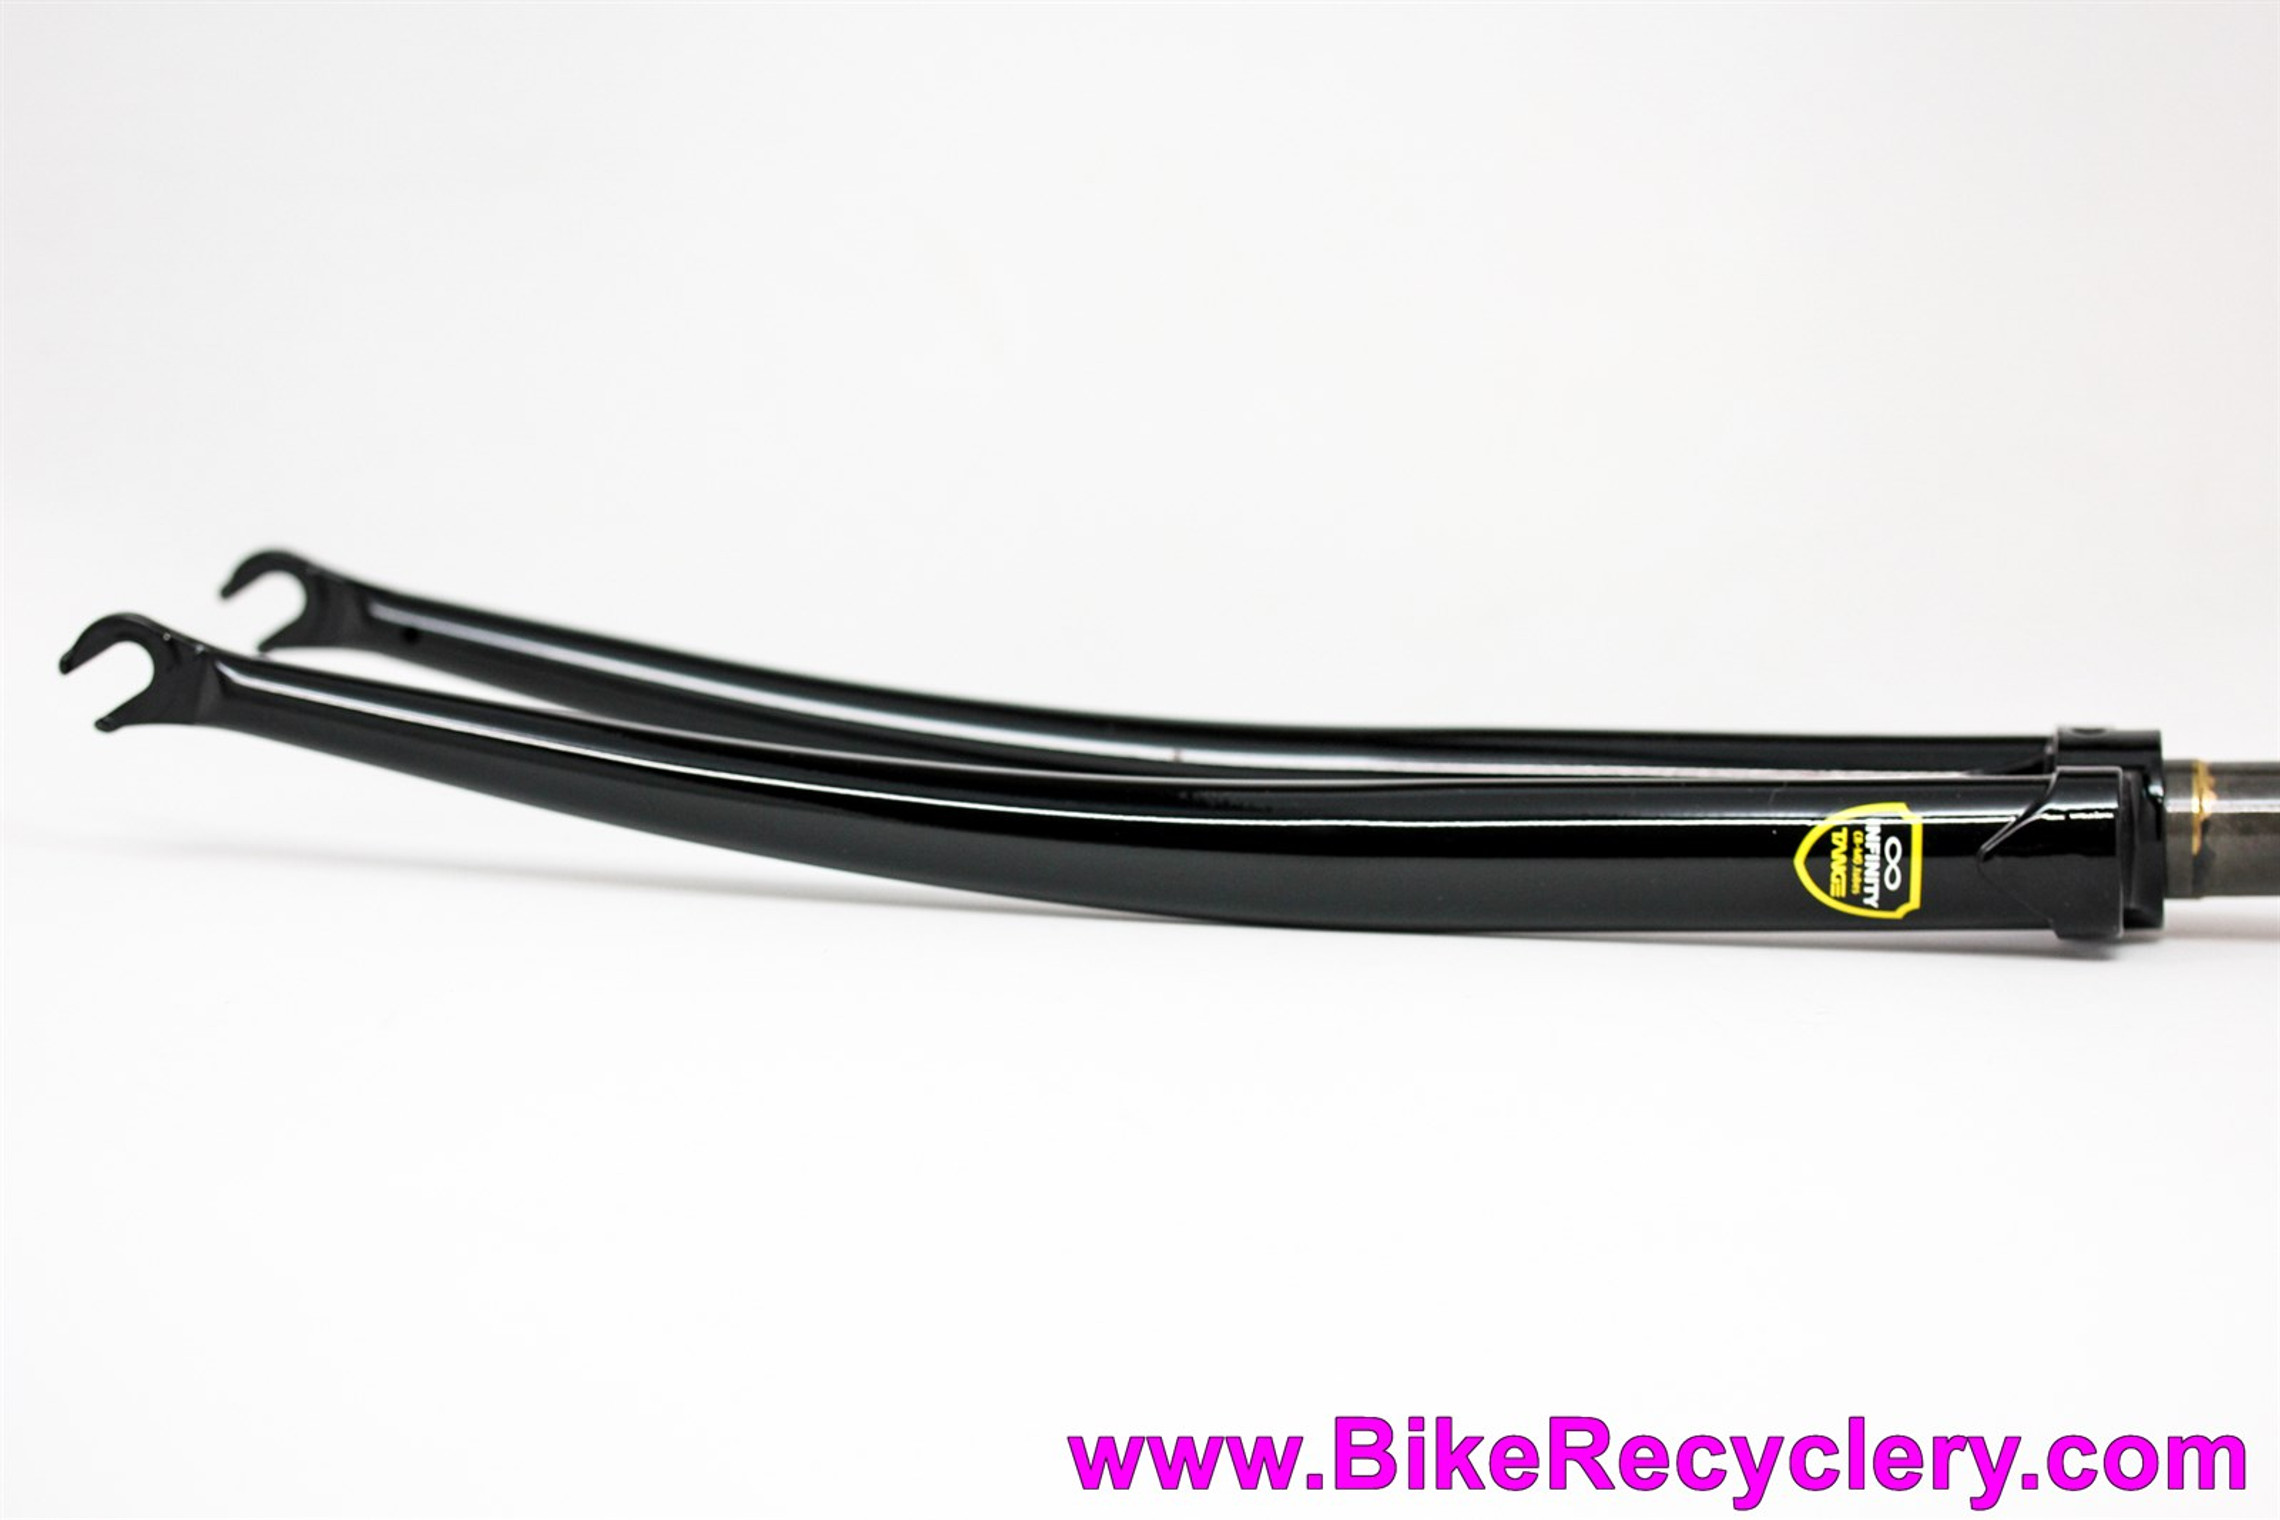 """NEW/NOS Soma Tange Infinity Lugged Steel Road / Track Fork: 1"""" Threaded x 200mm - 700c  - Black - #23055"""